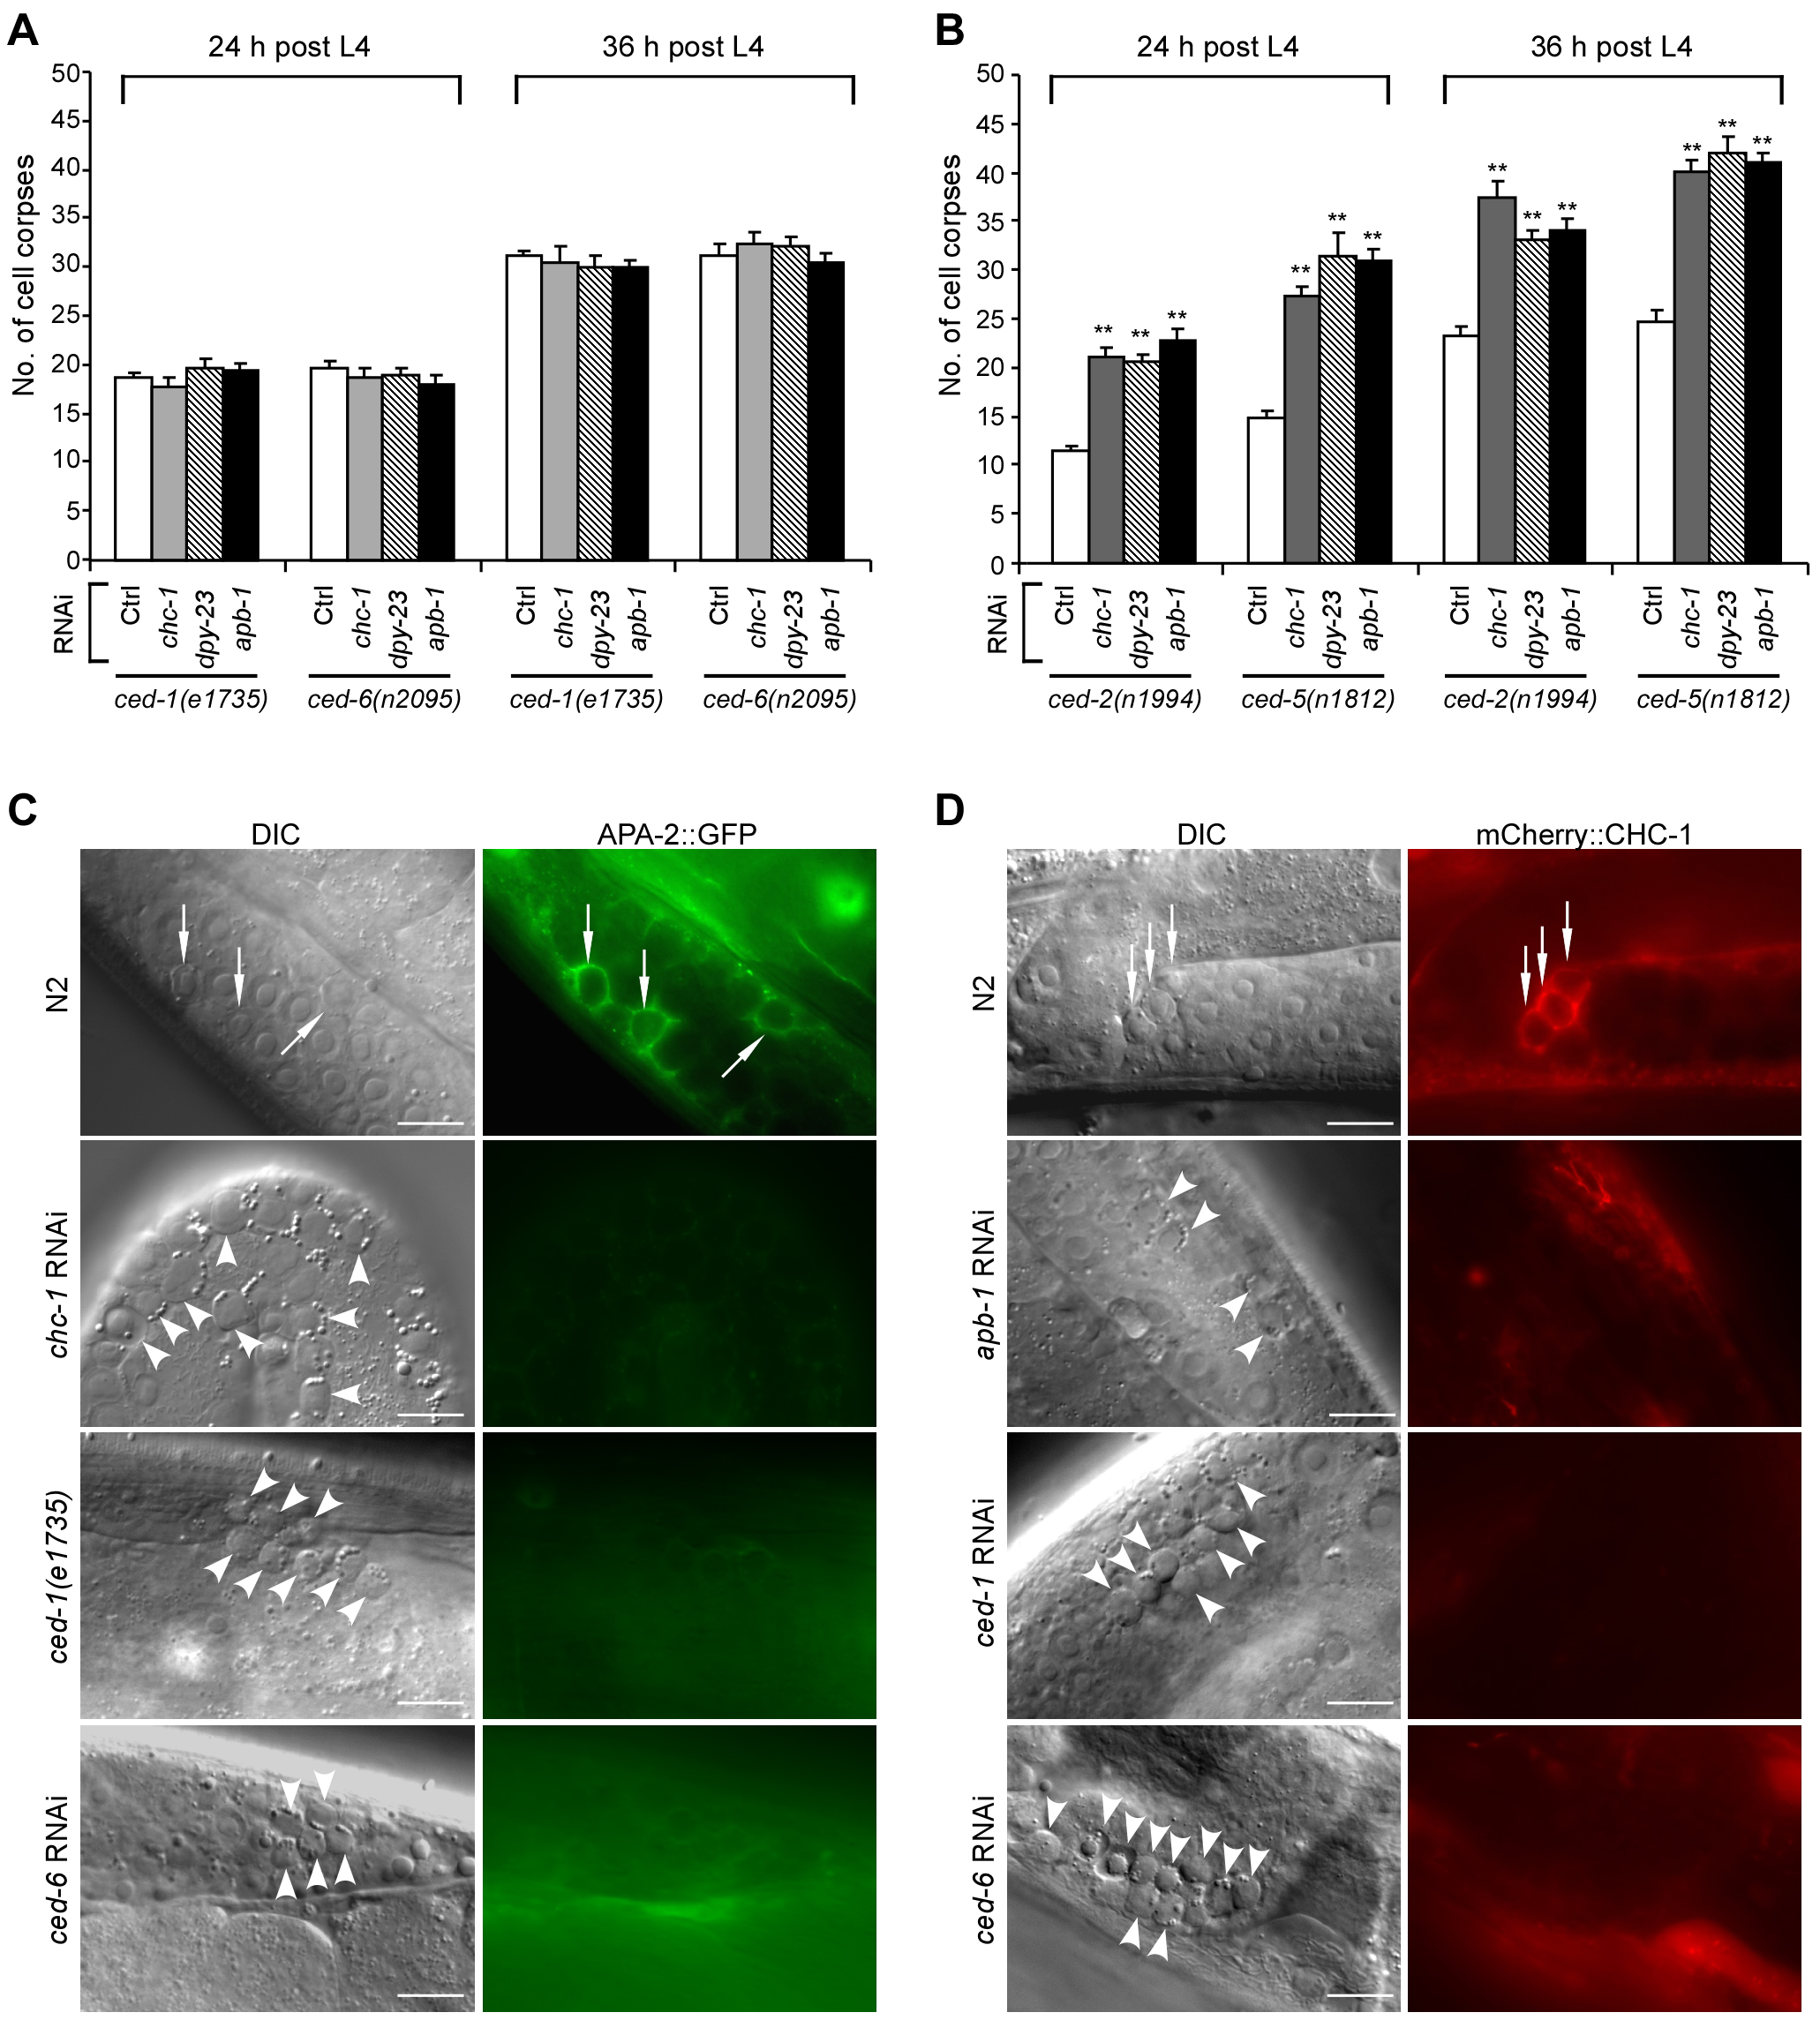 Clathrin and AP2 likely act in the same genetic pathway as CED-1 and CED-6.